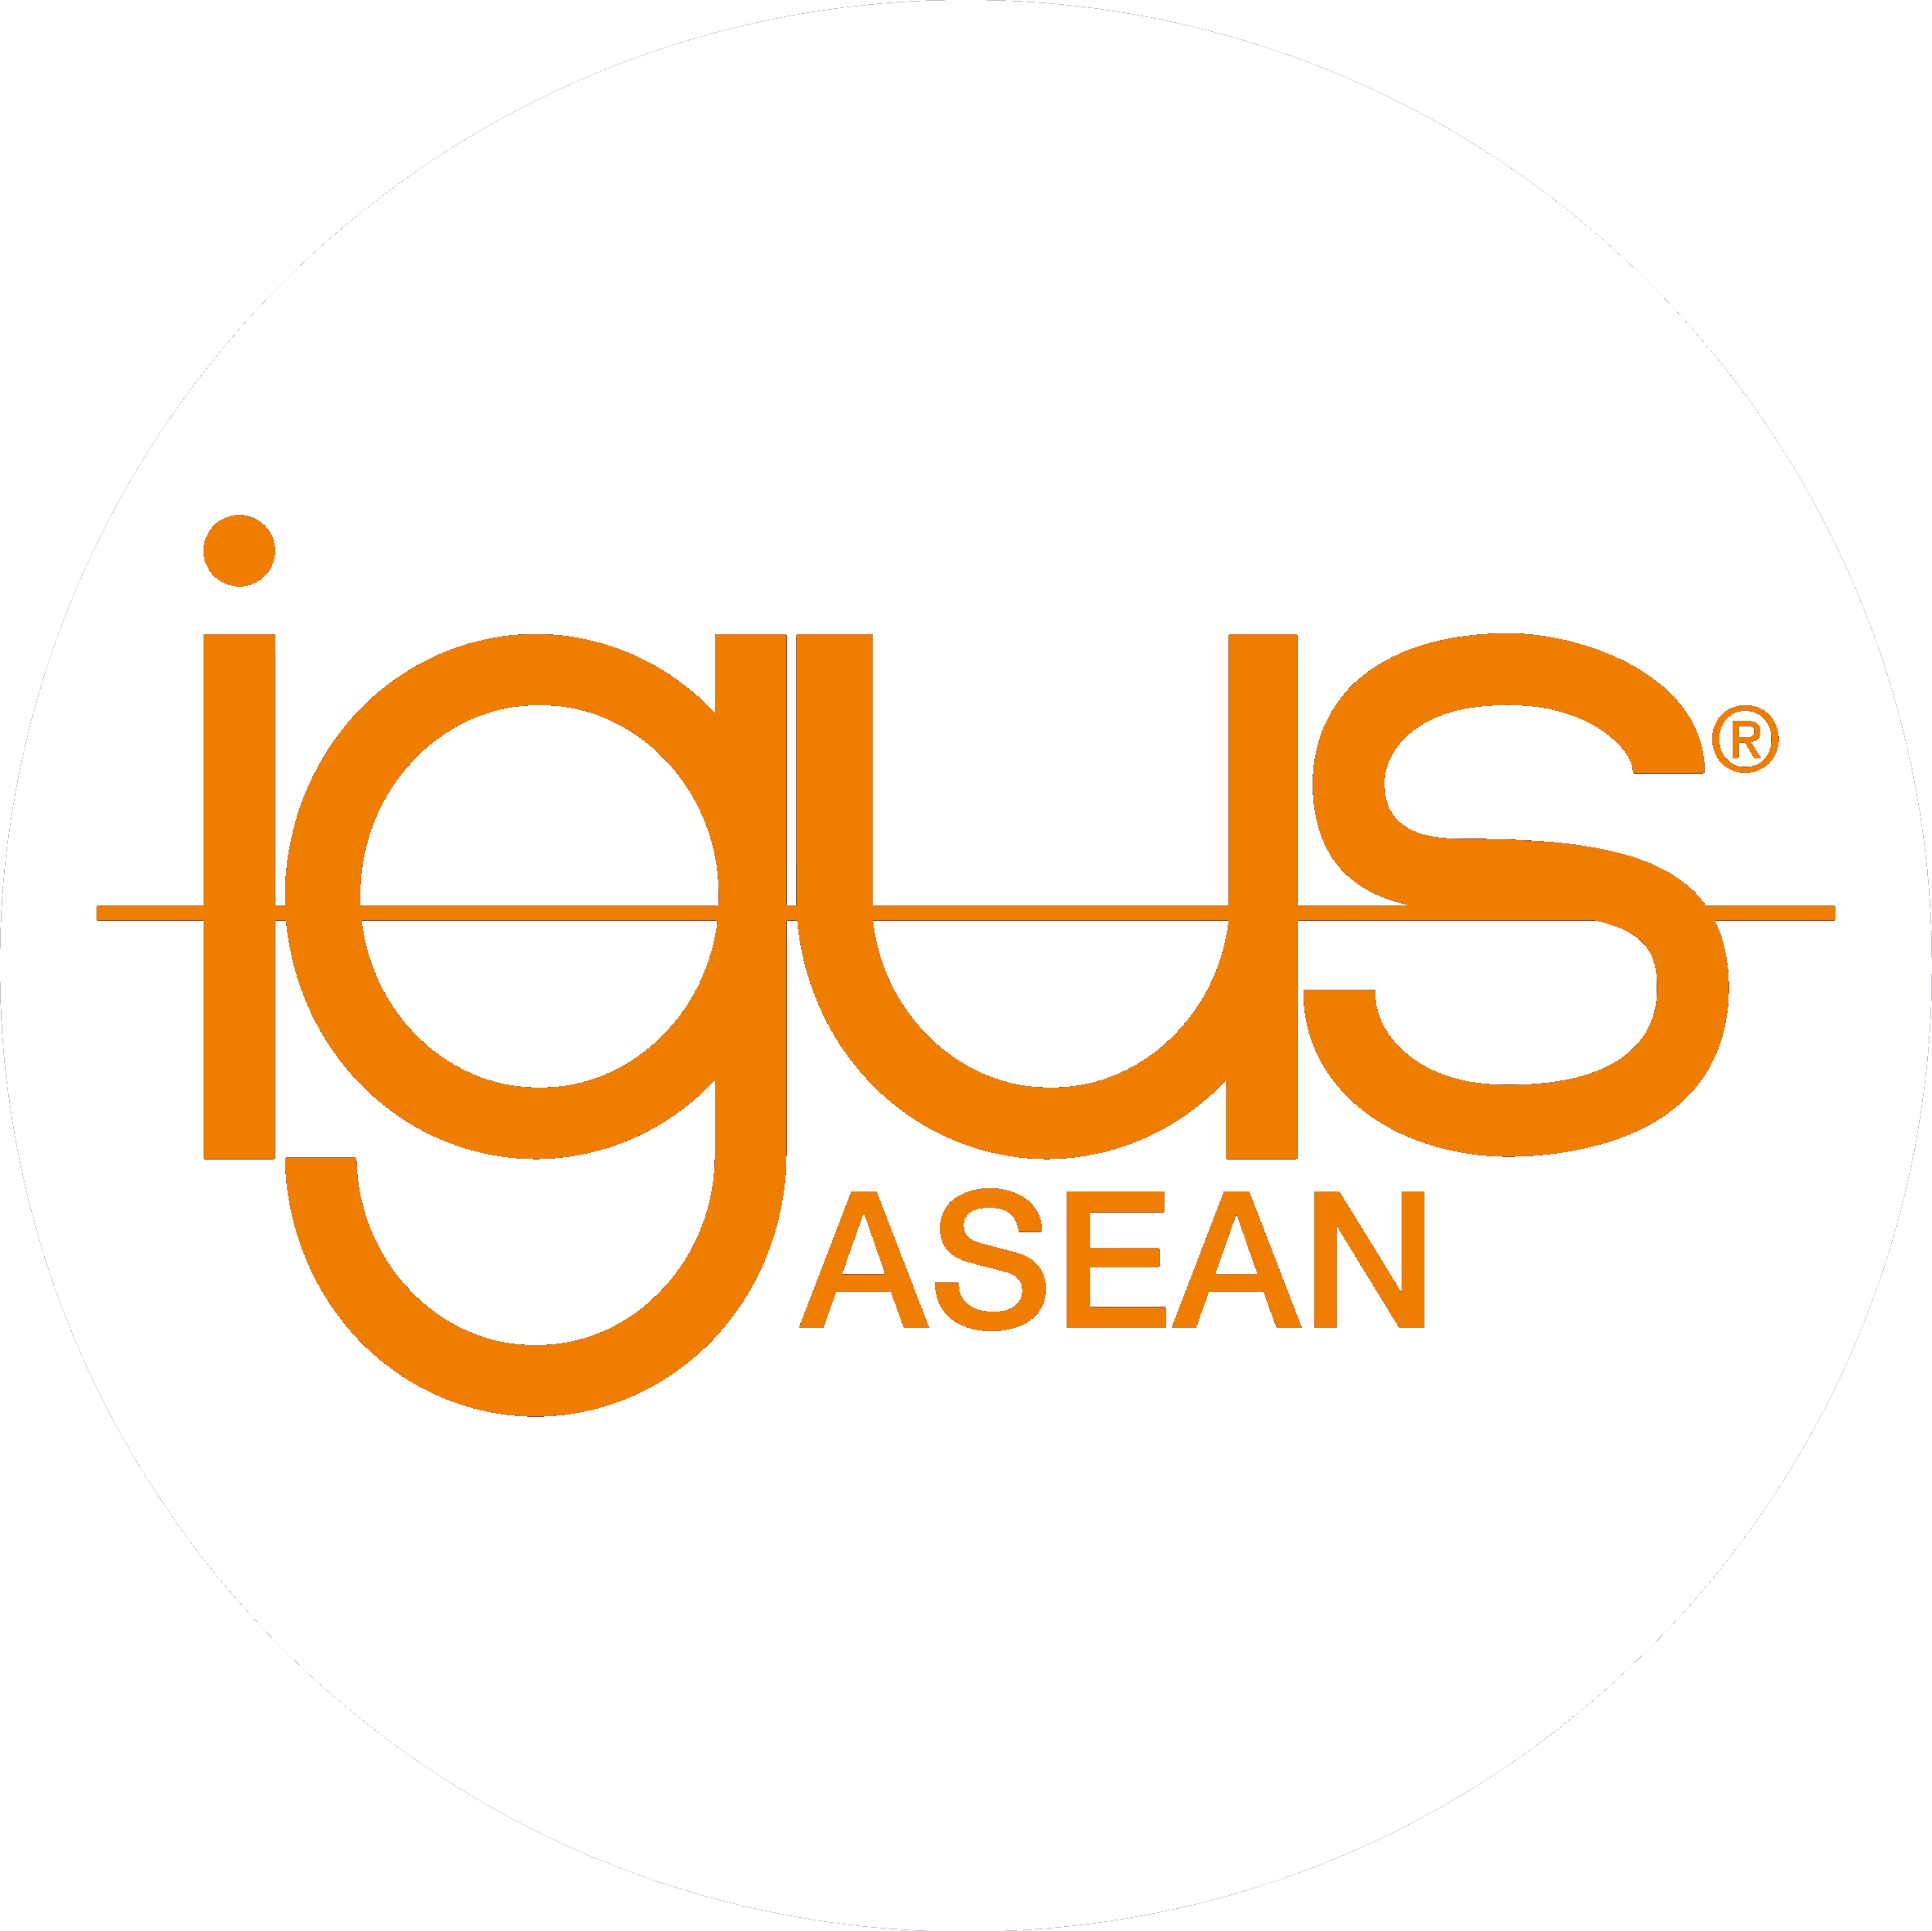 Igus products